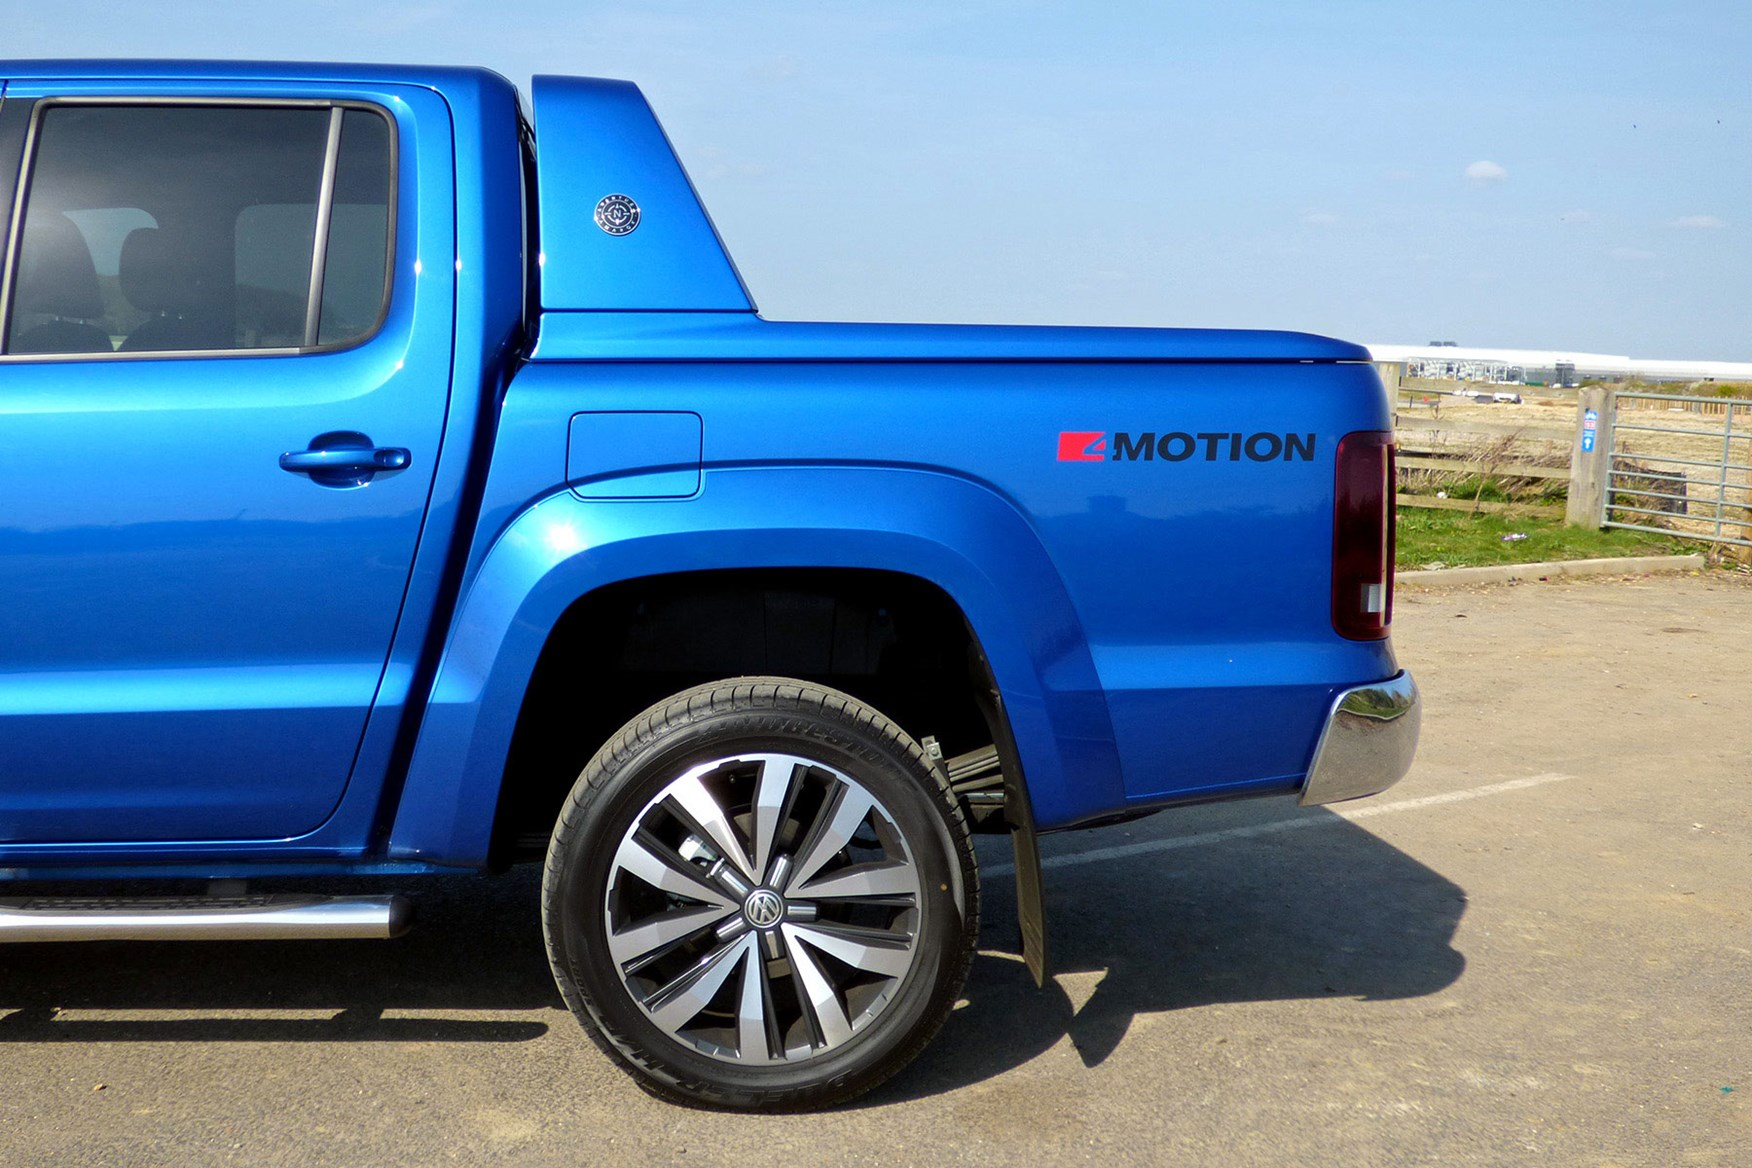 VW Amarok V6 Aventura 258hp review - rear sports bar, blue